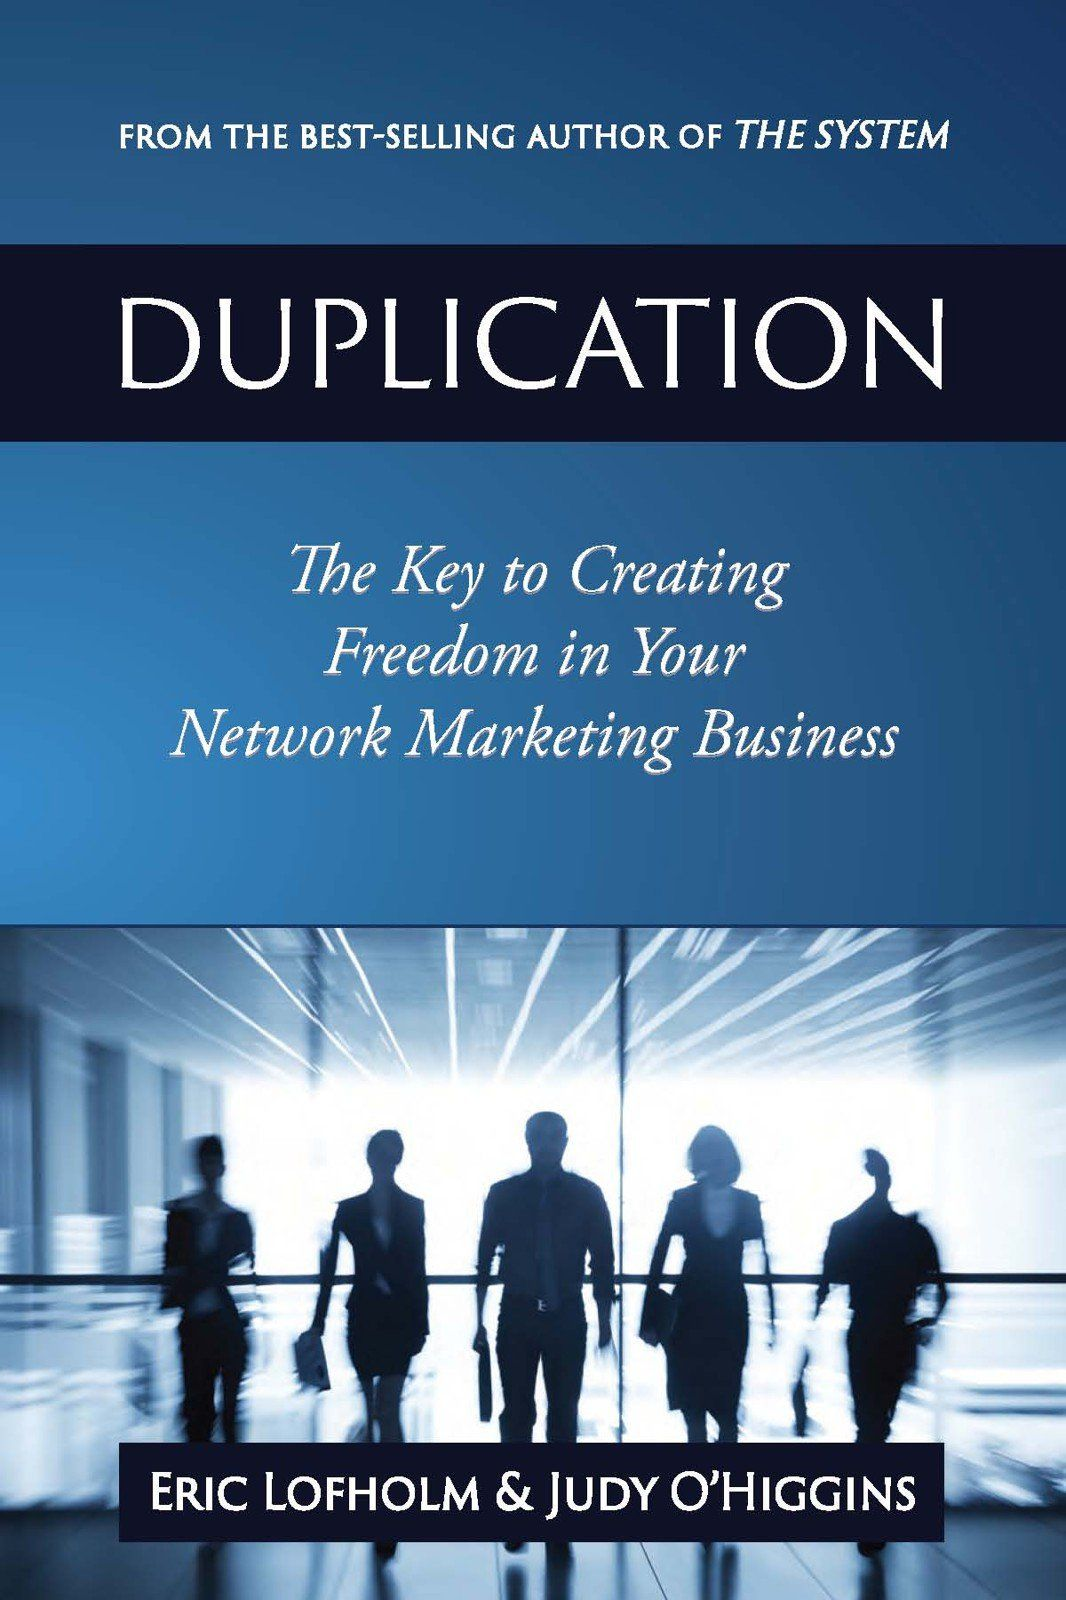 Duplication: The Key to Creating Freedom in Your Network